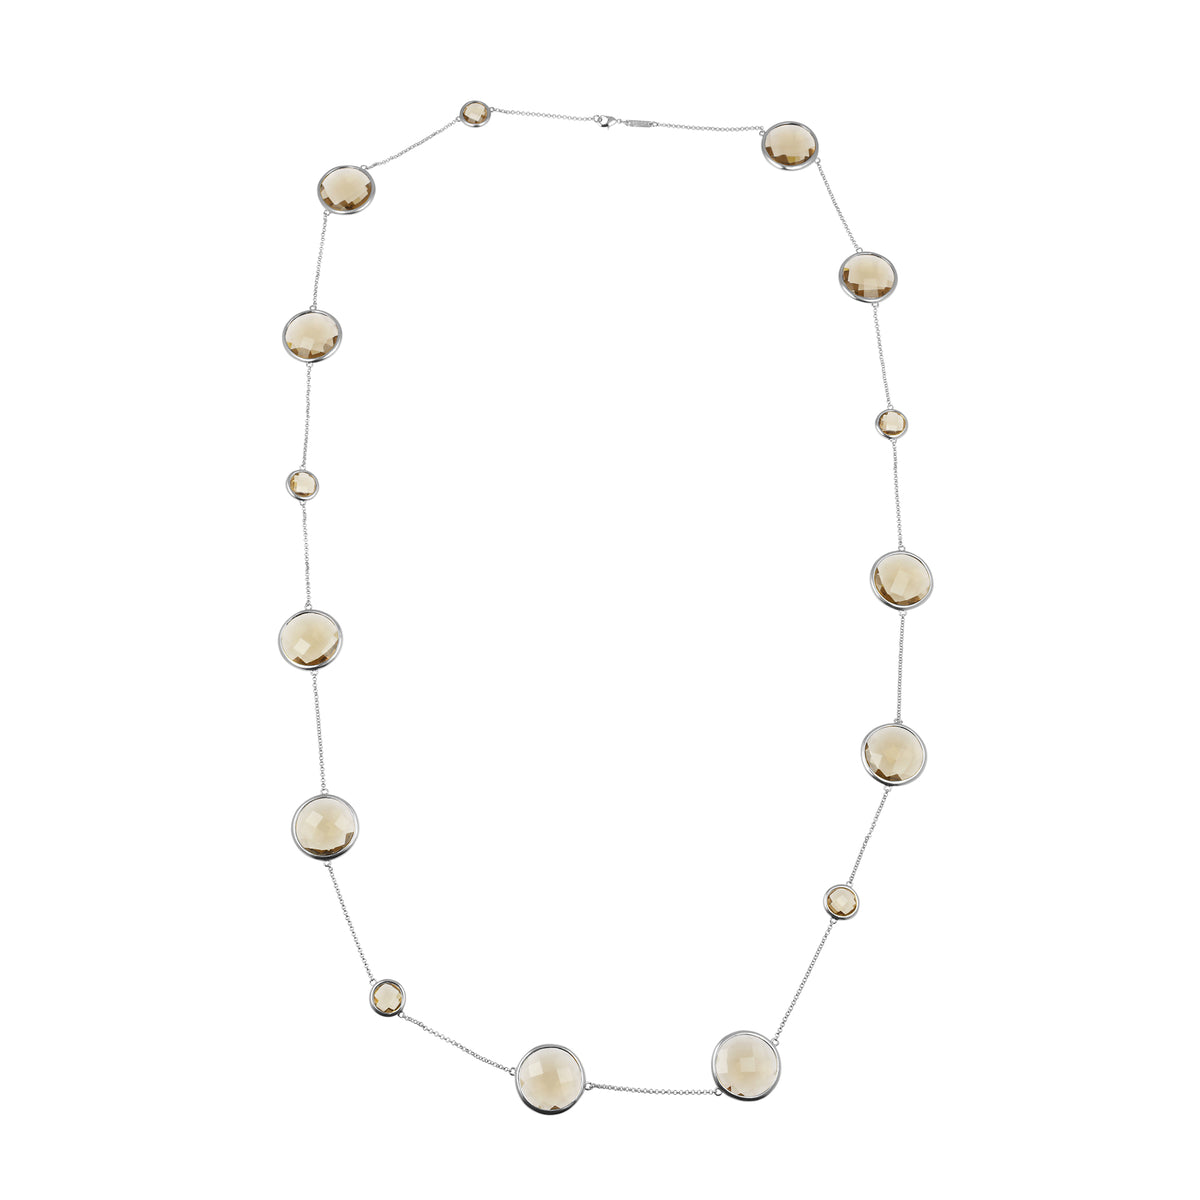 Sophie Amazon Necklace Smoky Quartz - Charlotte Bonde